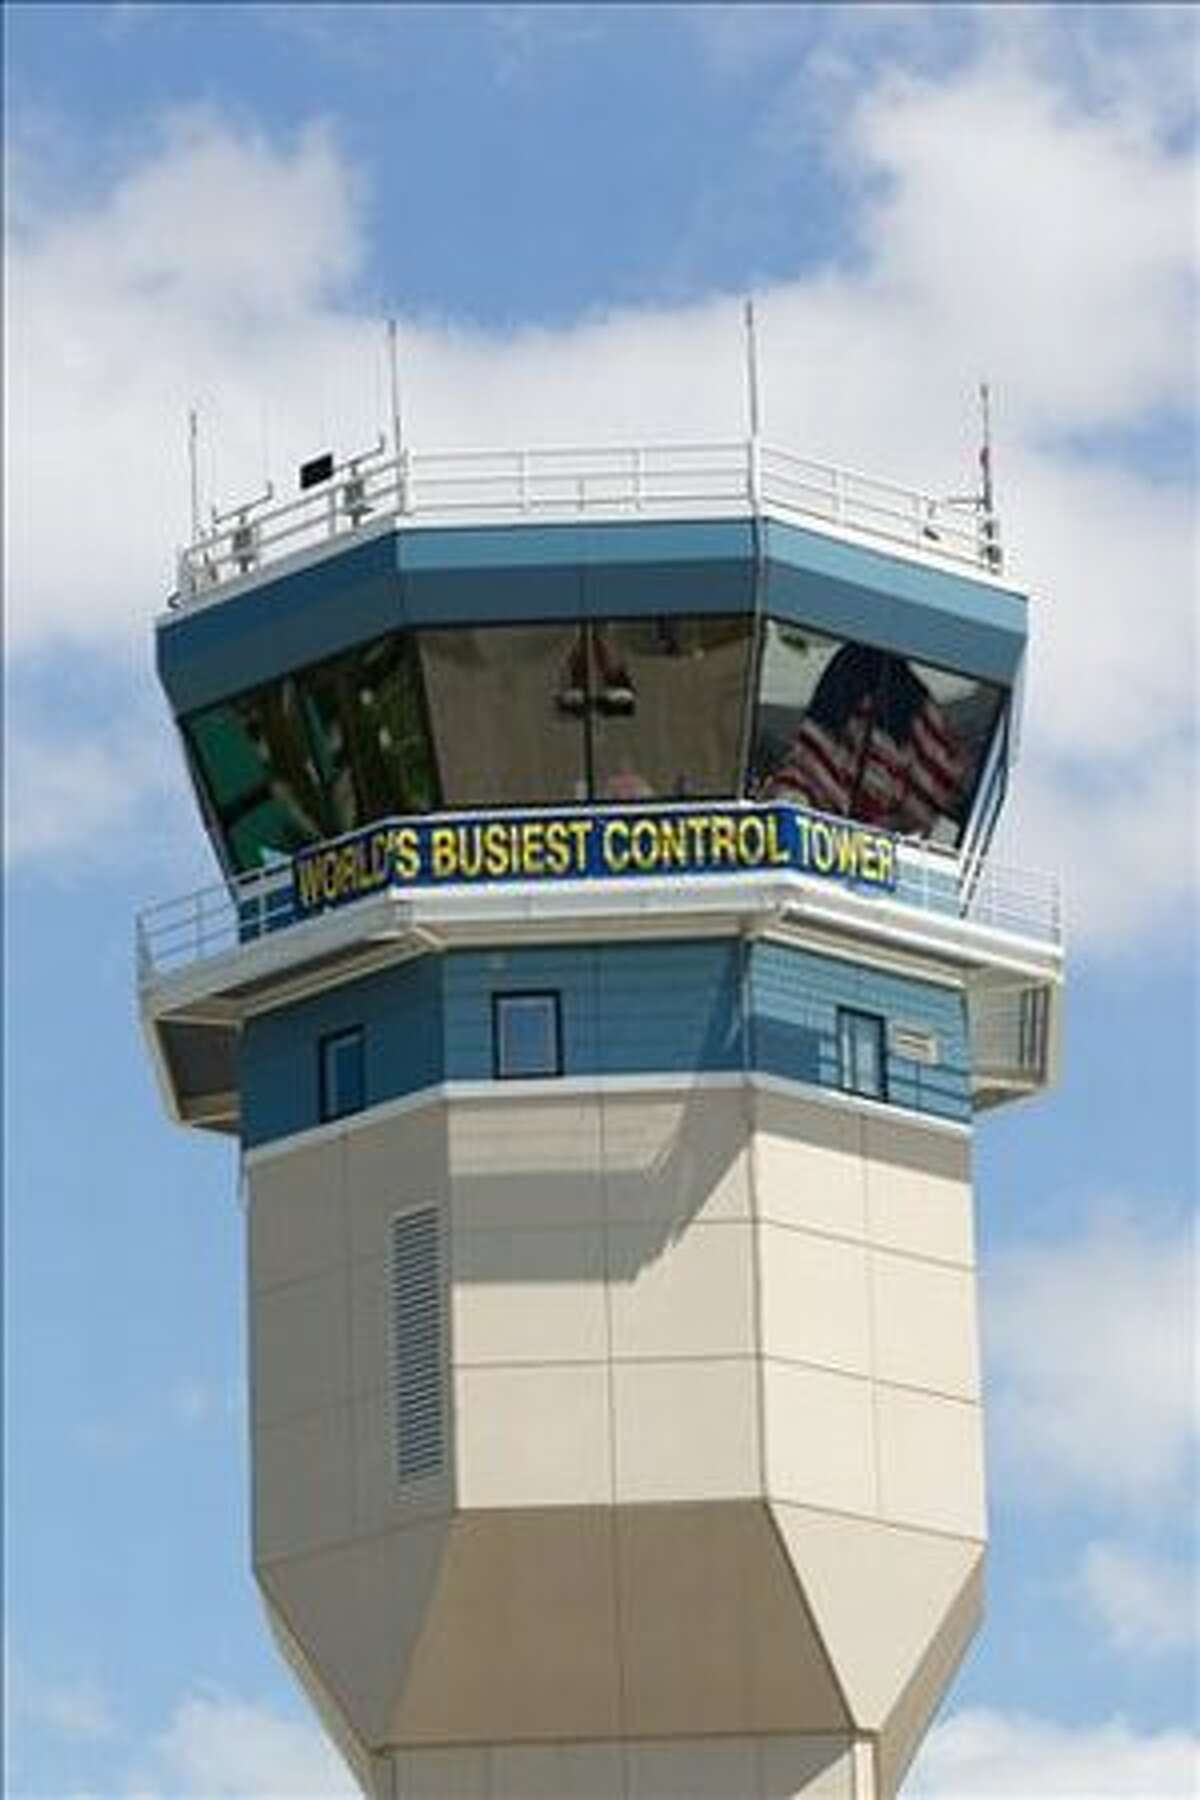 The cab of the Wittman Regional Aircraft Tower captures the reflection of the U.S. flag. (Jim Koepnick/EAA)